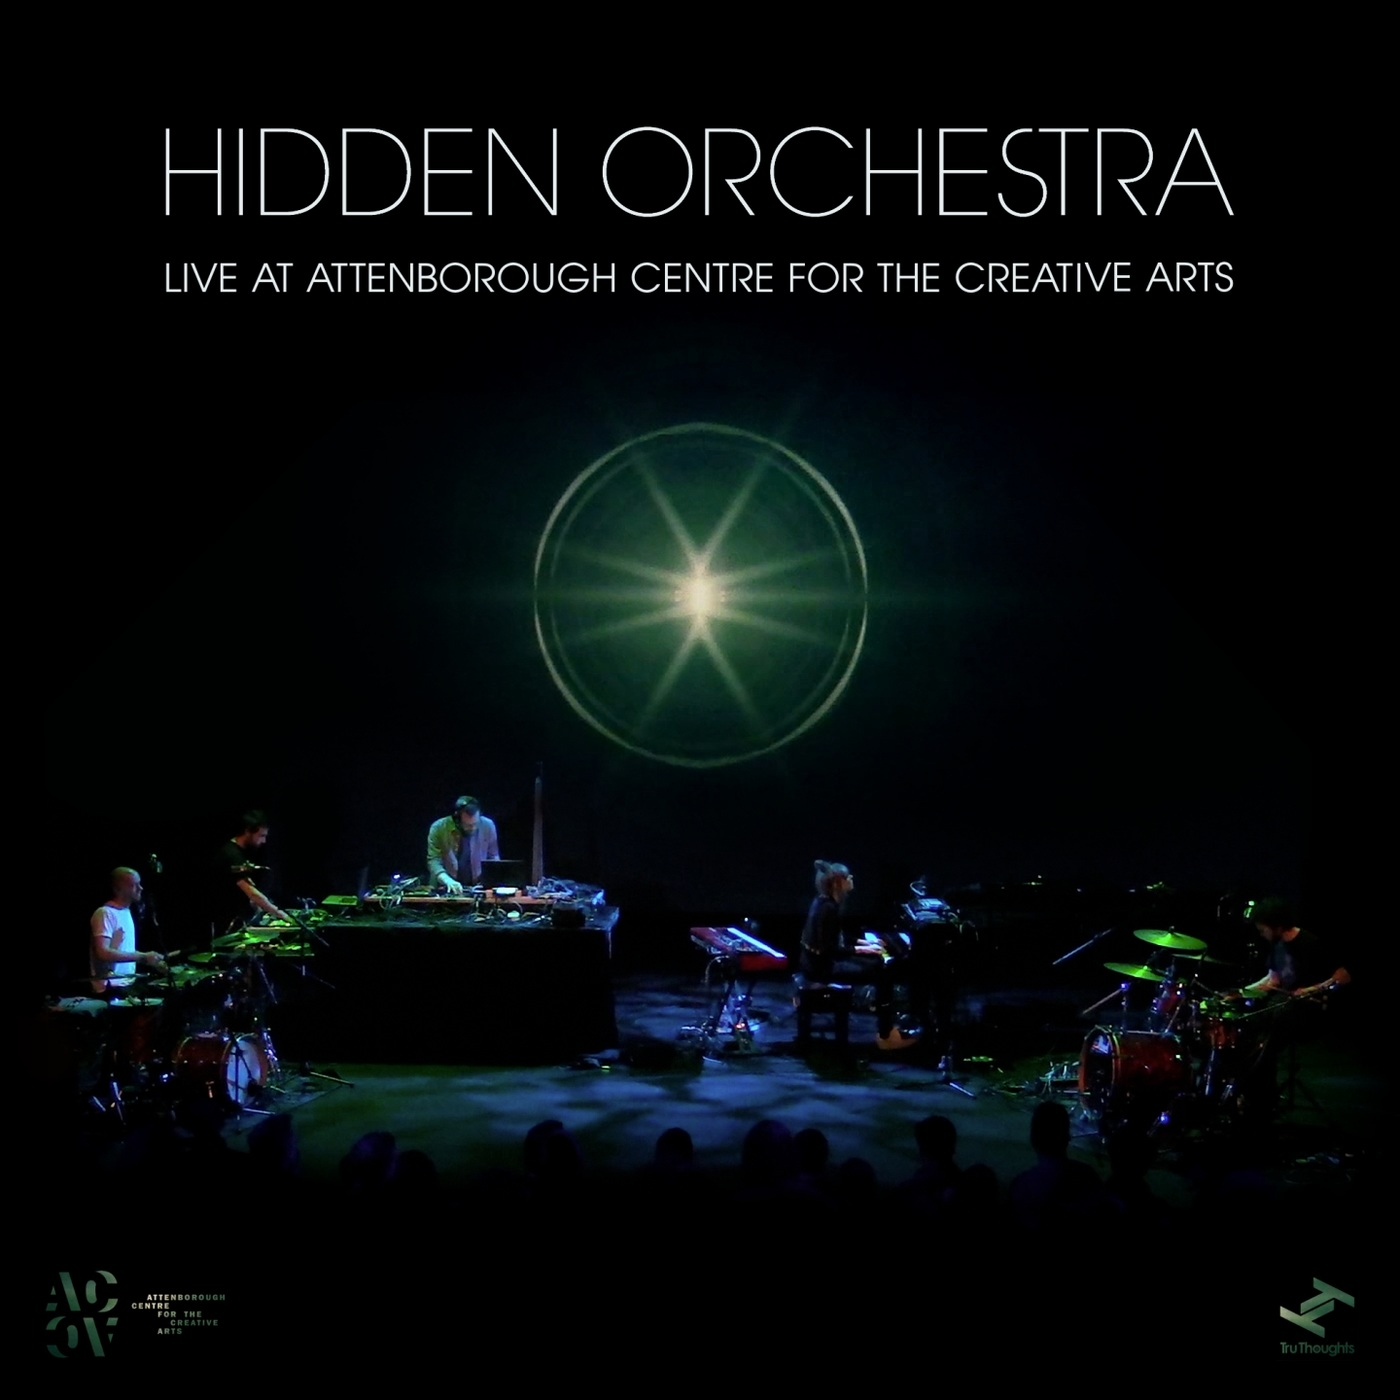 HIDDEN ORCHESTRA - Live at Attenborough Centre for the Creative Arts cover